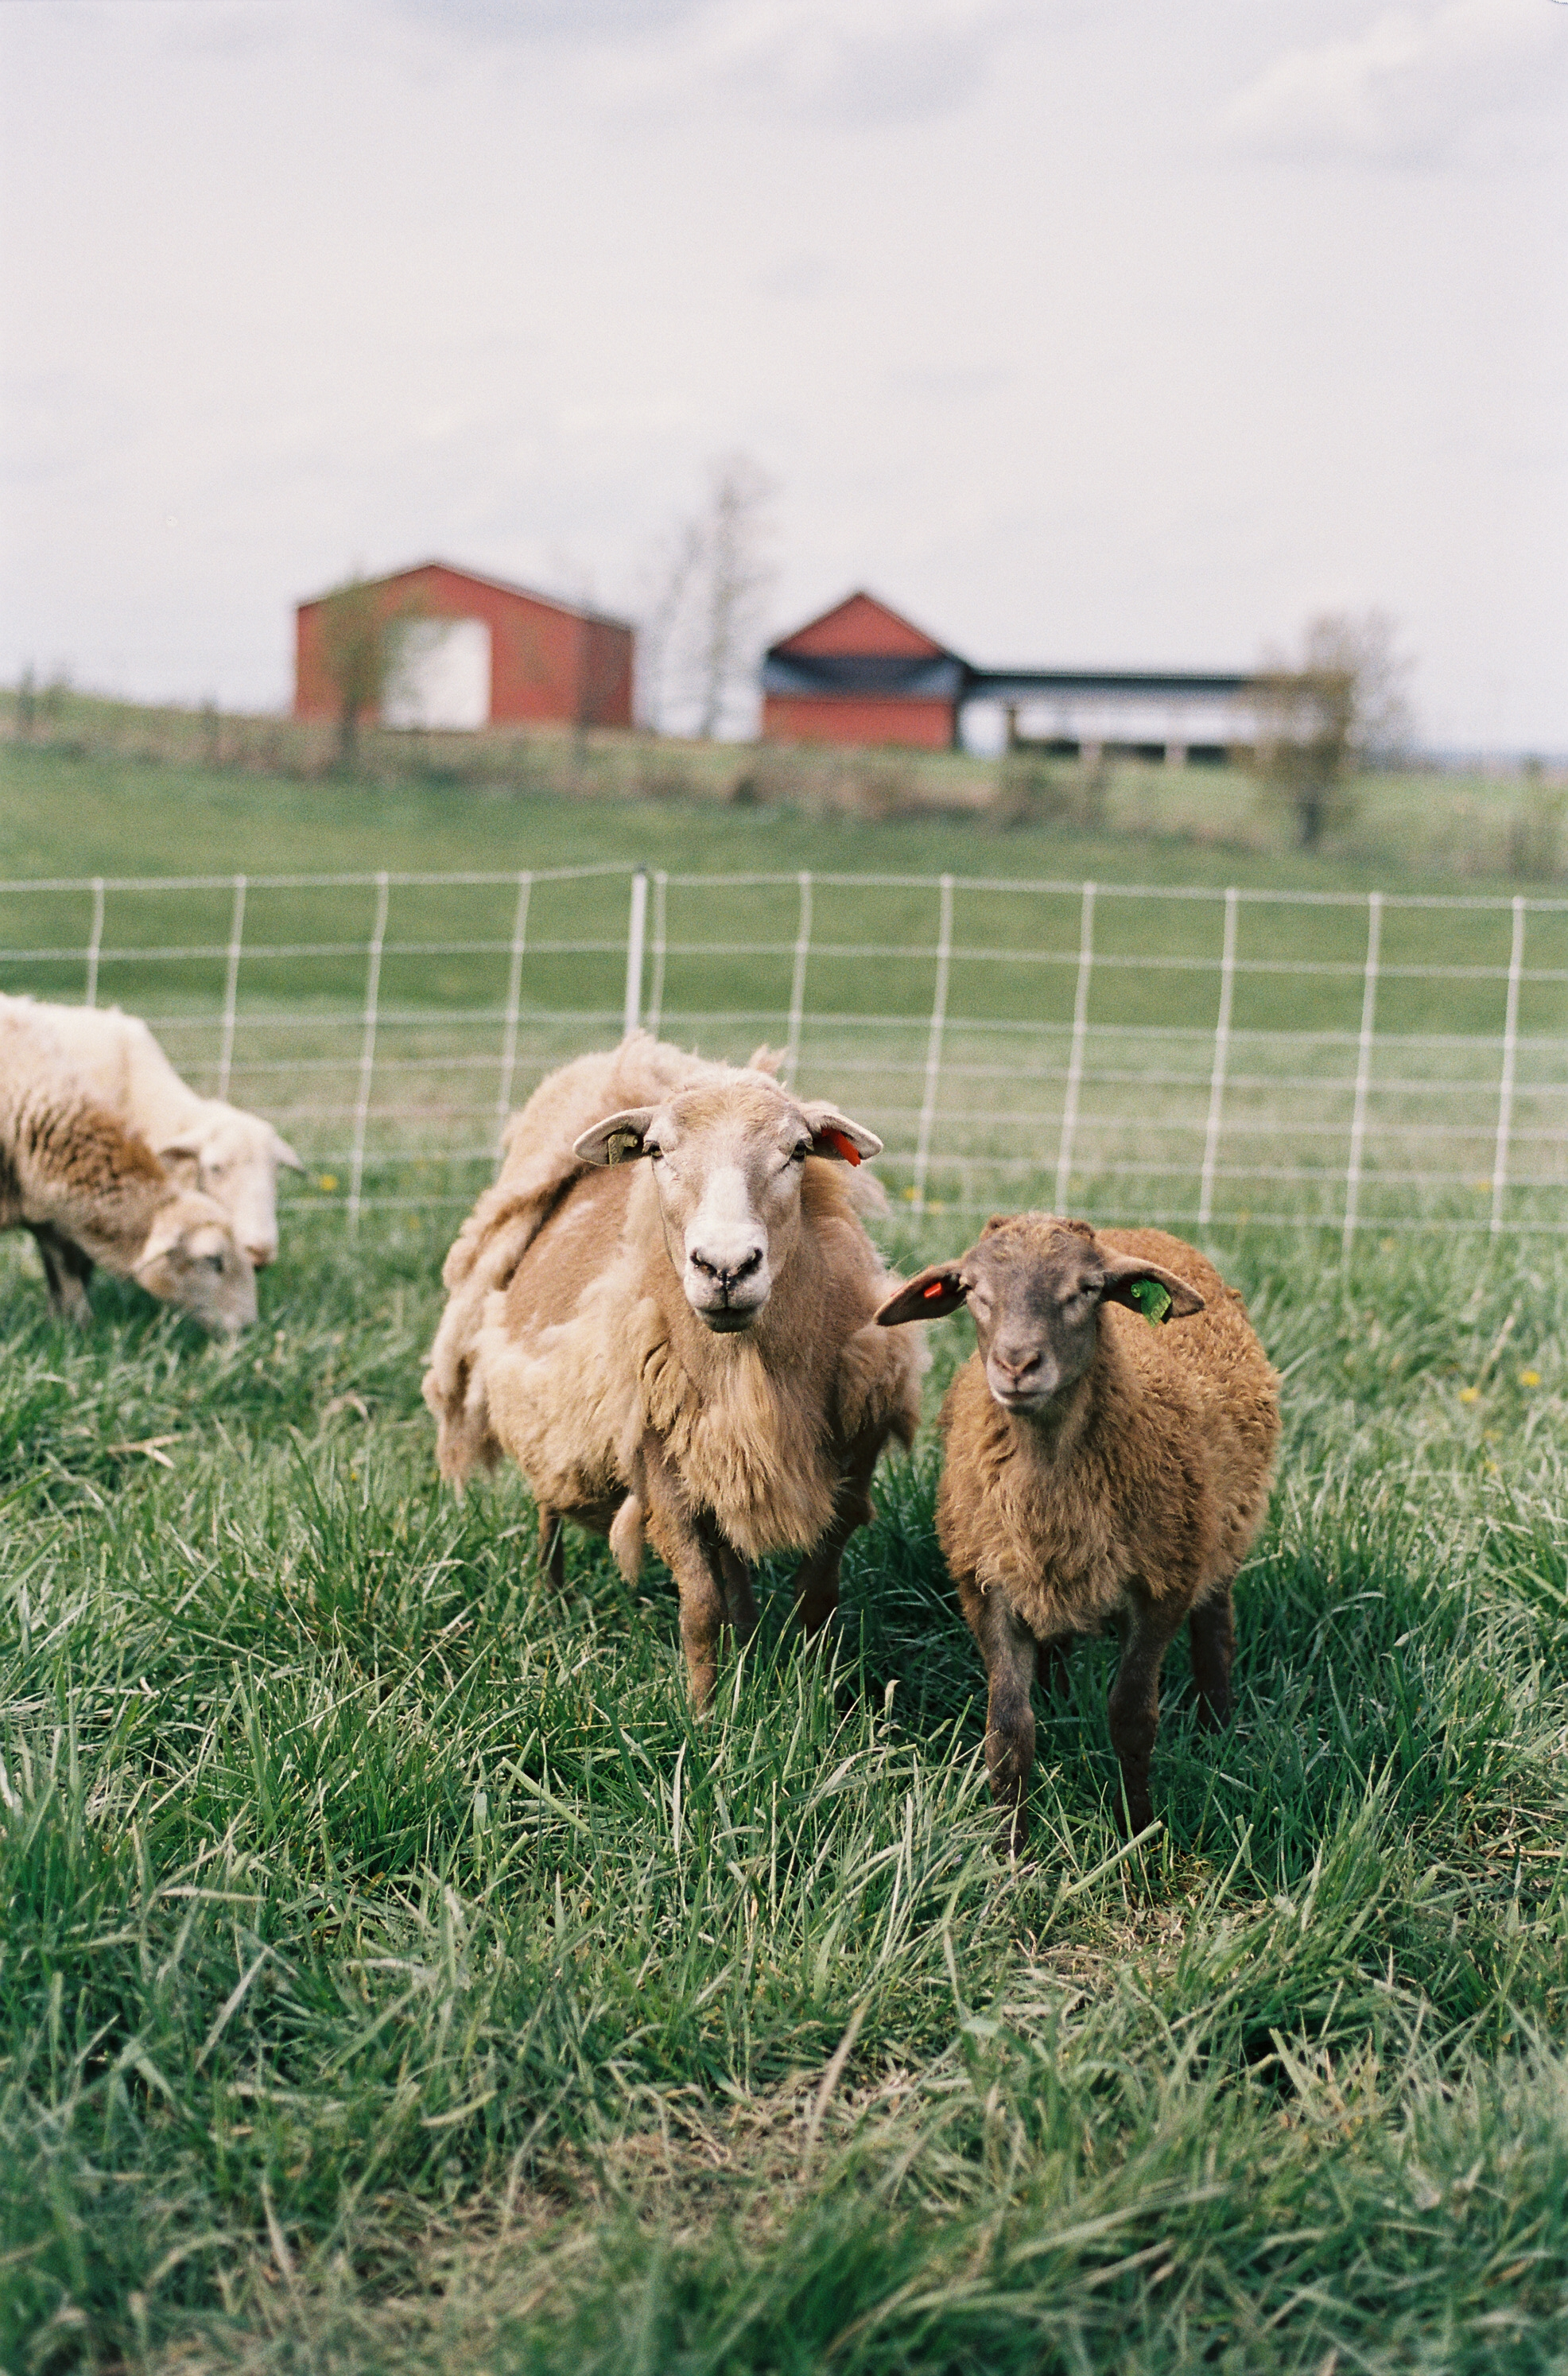 Here for the sheep? - Click HERE to learn more about our NSIP-enrolled, parasite resistant flock of Katahdin sheep. We frequently have high-quality breeding ewes and rams for sale, as well as pasture-raised lamb for the table.